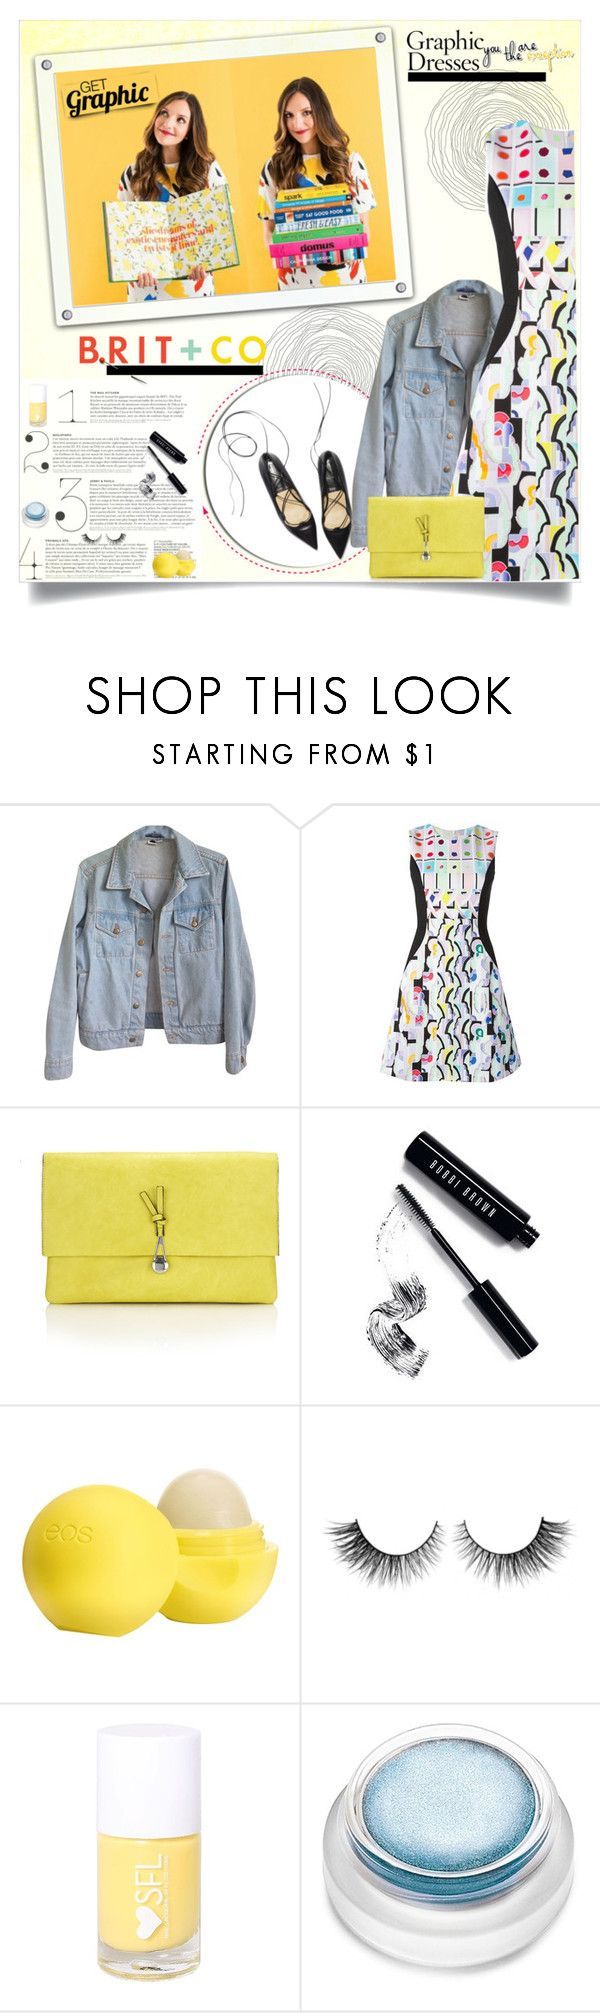 """""""Get Graphic With Brit + Co."""" by alves-nogueira ❤ liked on Polyvore featuring American Apparel, Peter Pilotto, BRIT*, Wallis, Bobbi Brown Cosmetics, Eos, Rimini, rms beauty, contestentry and polyvoreeditorial"""